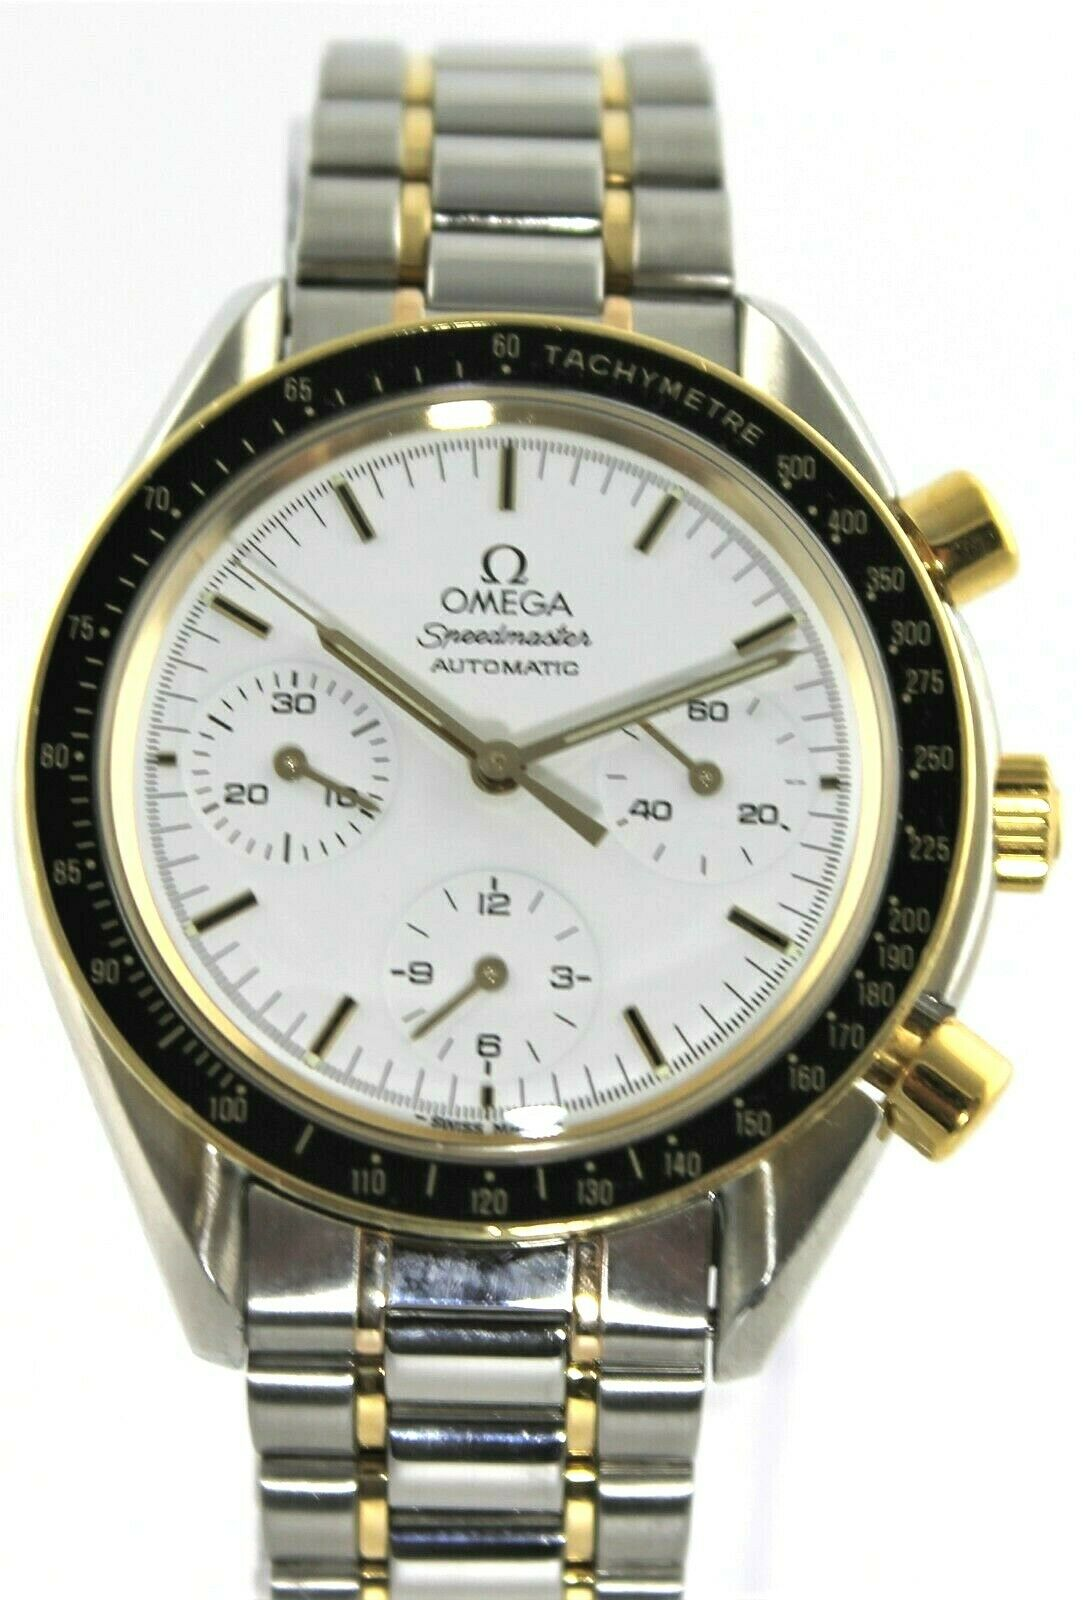 OMEGA SPEEDMASTER 3310.20 AUTOMATIC CHRONOGRAPH 18K GOLD WHITE SWISS MENS WATCH